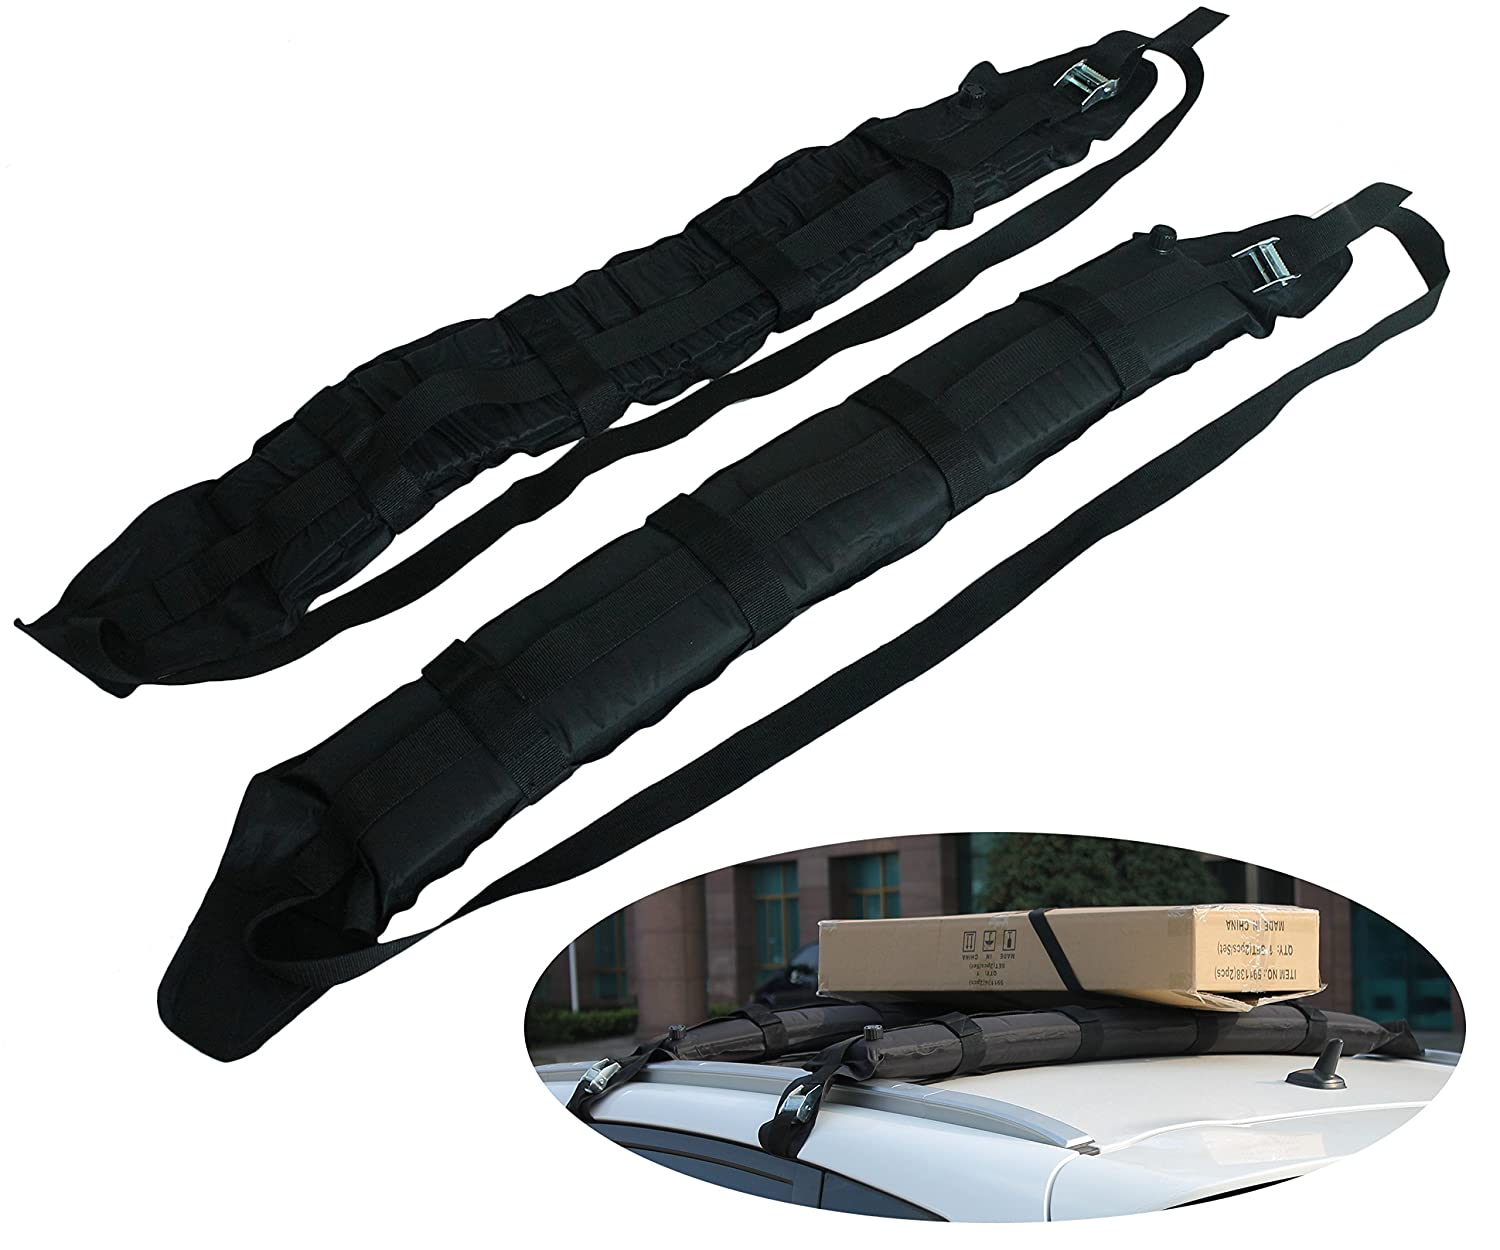 Self Inflatable Car Roof Rack - Ski Rack / Snowboard / Paddleboard / Kayak / Canoe / Luggage / Ladder IZTOSS